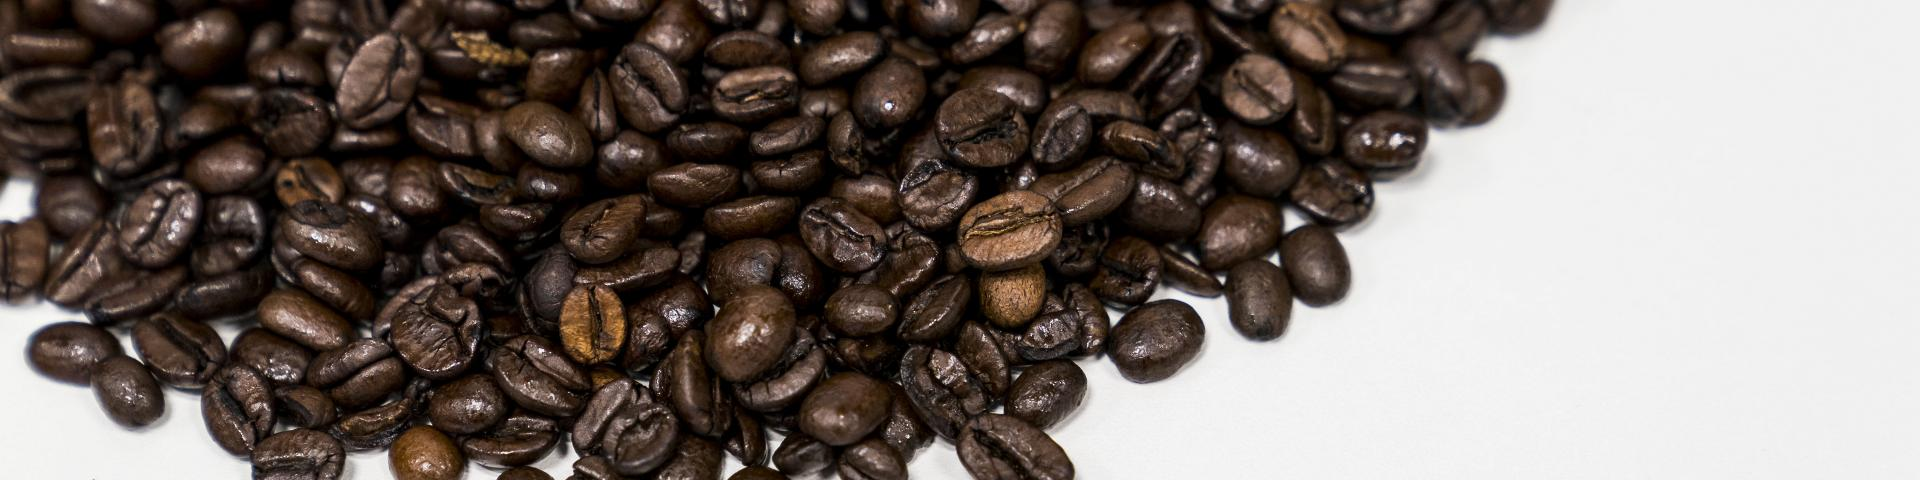 What Is The Demand For Coffee On The European Market Cbi